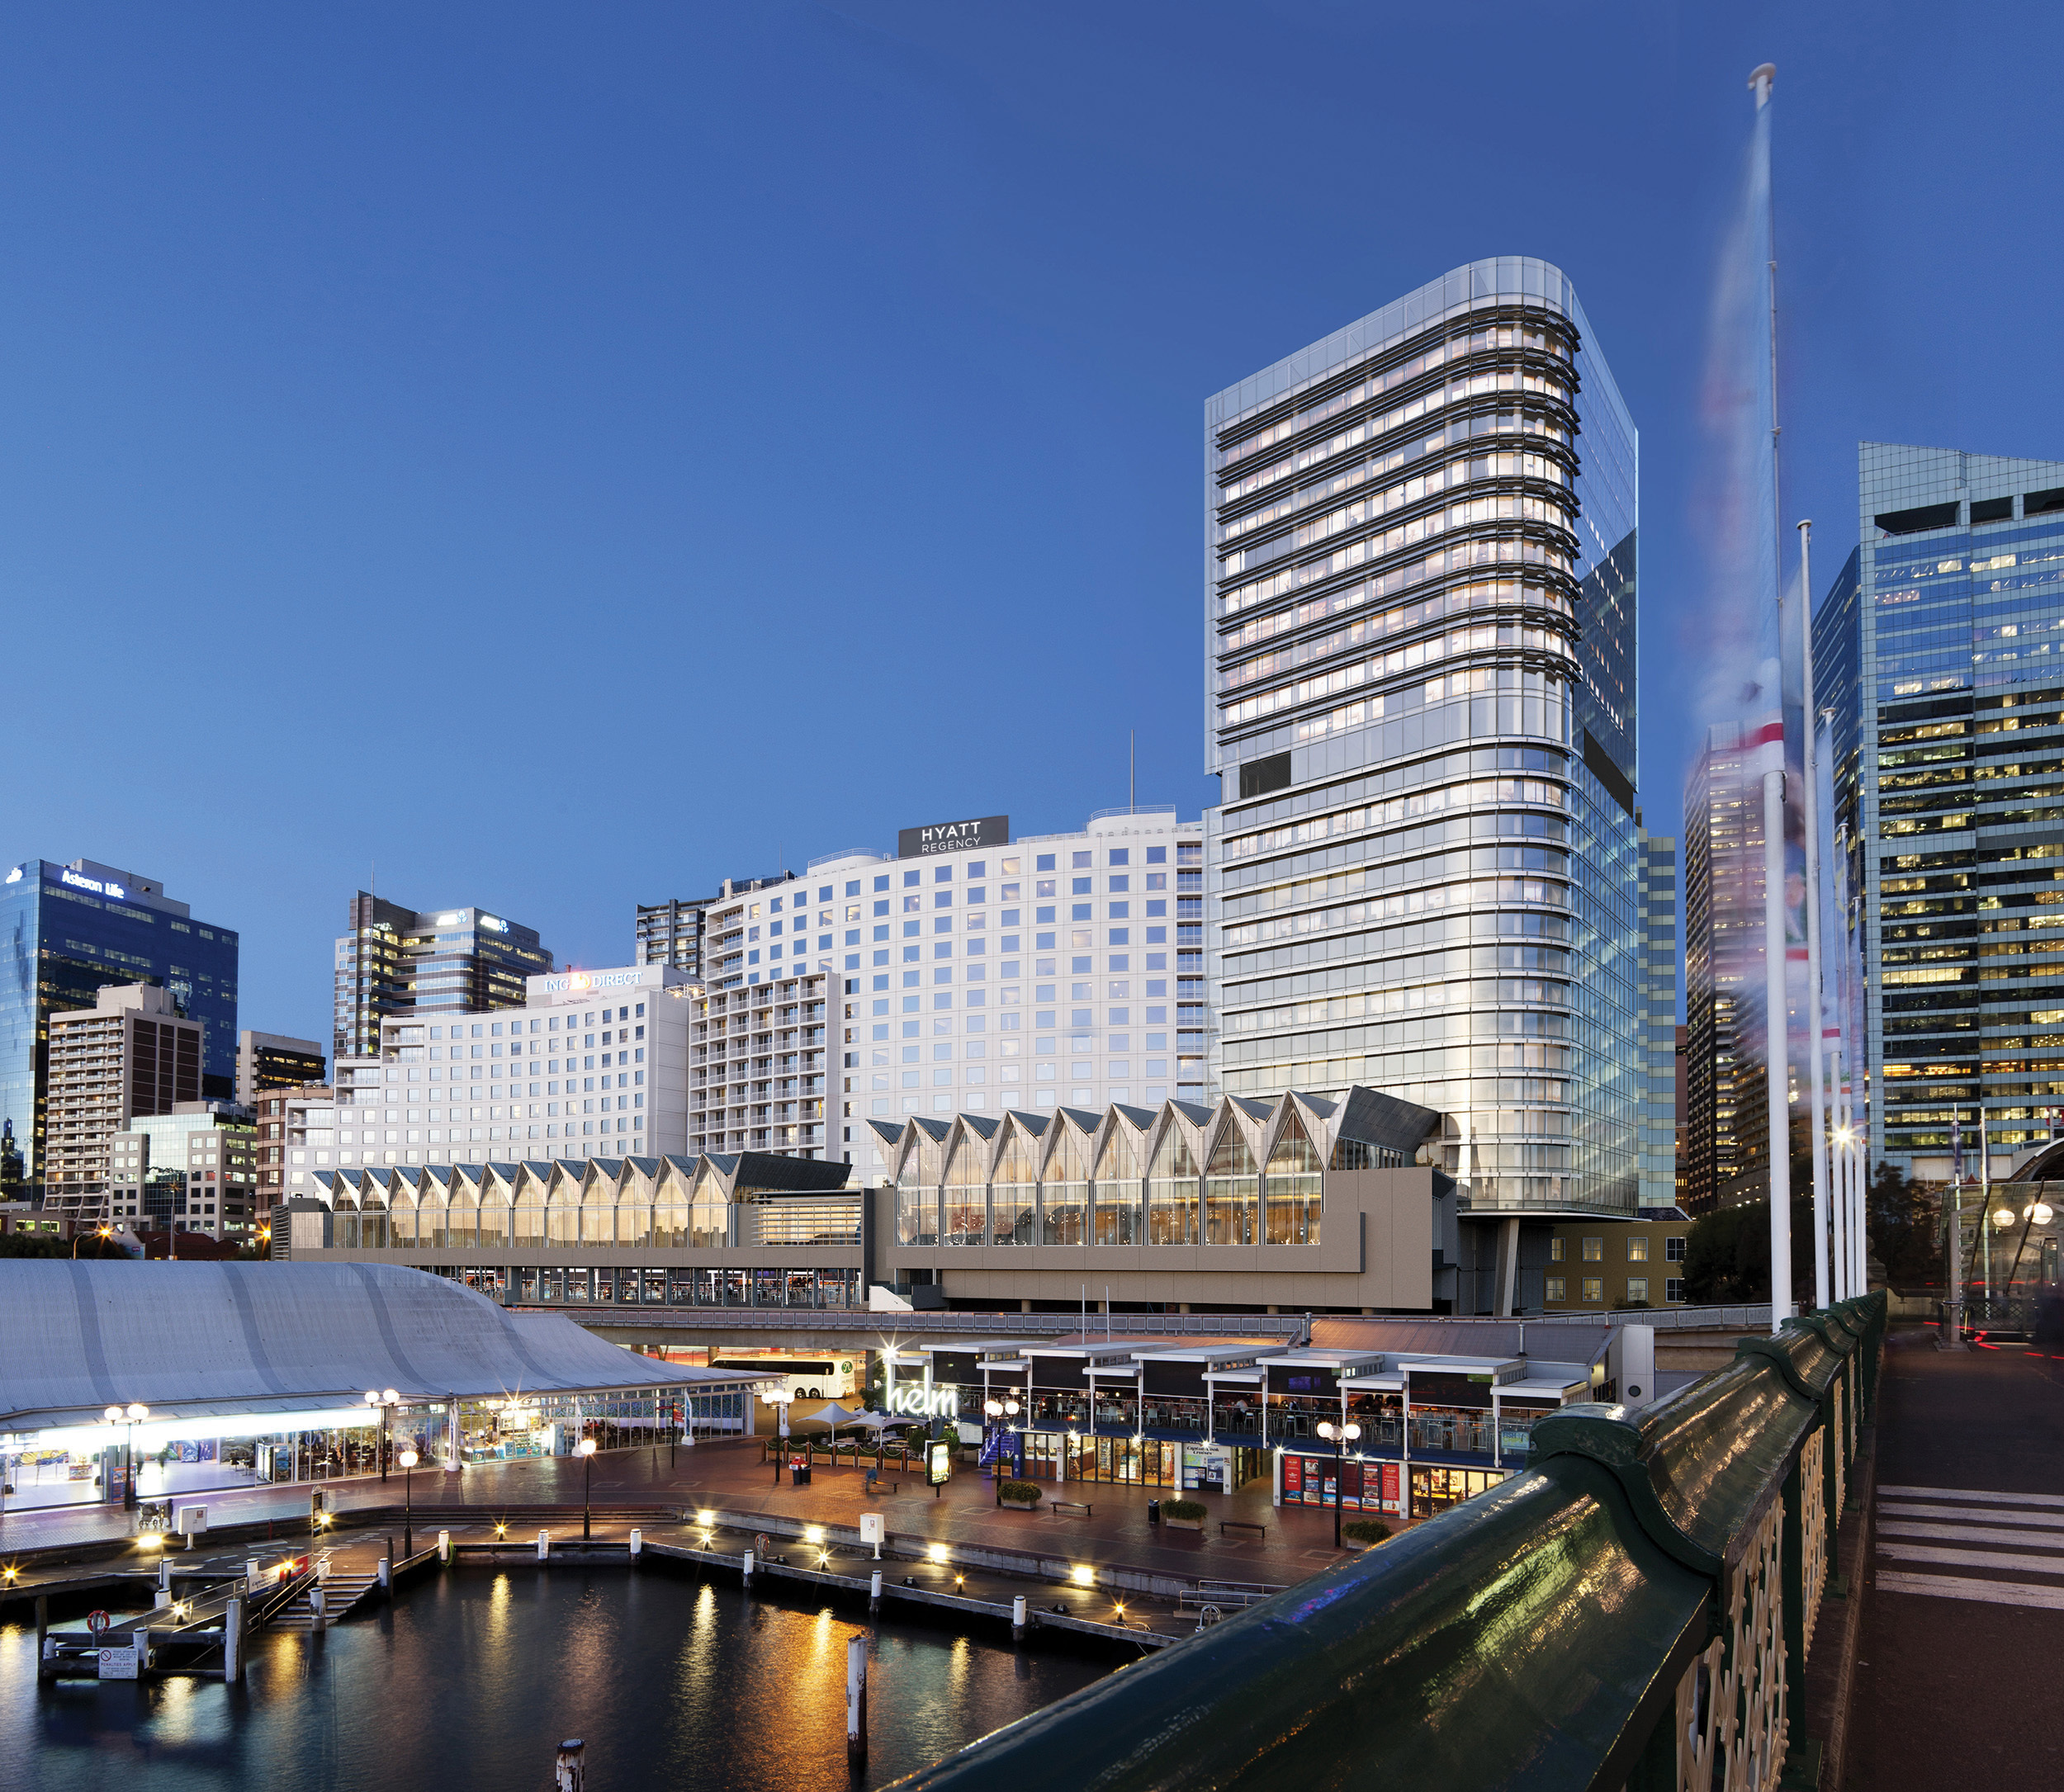 Hyatt Regency Sydney offers an unparalleled location in the Sydney Central Business District adjacent to Darling Harbour. (Photo: Business Wire)